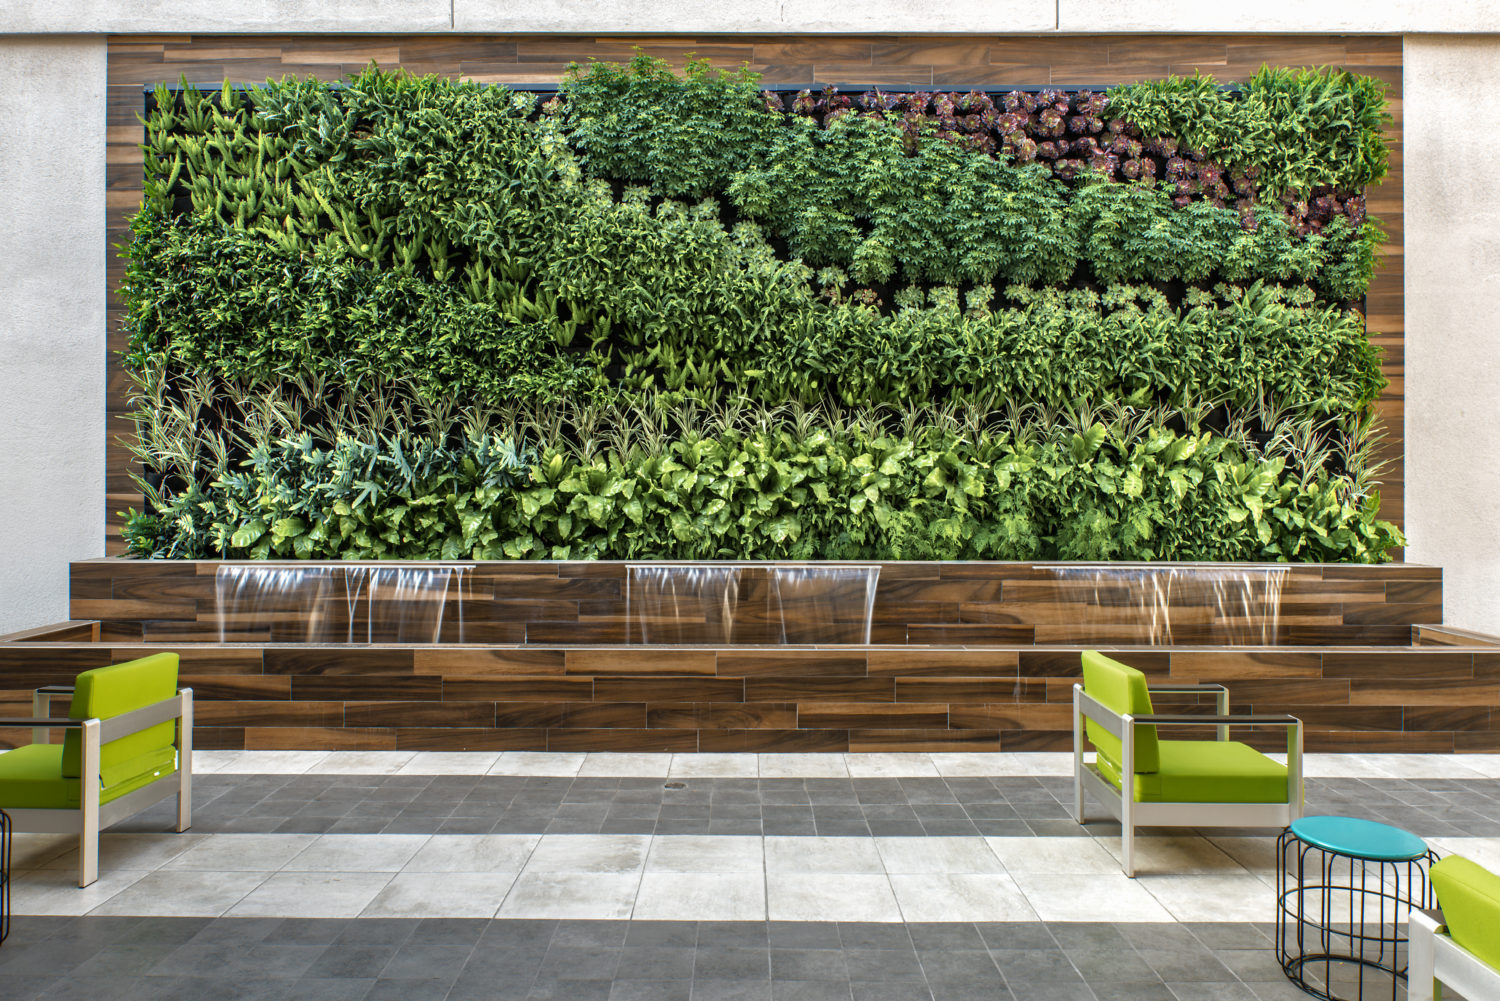 """Outdoor """"Living Wall"""" Installation brings Class A West Covina Office Project to Life"""